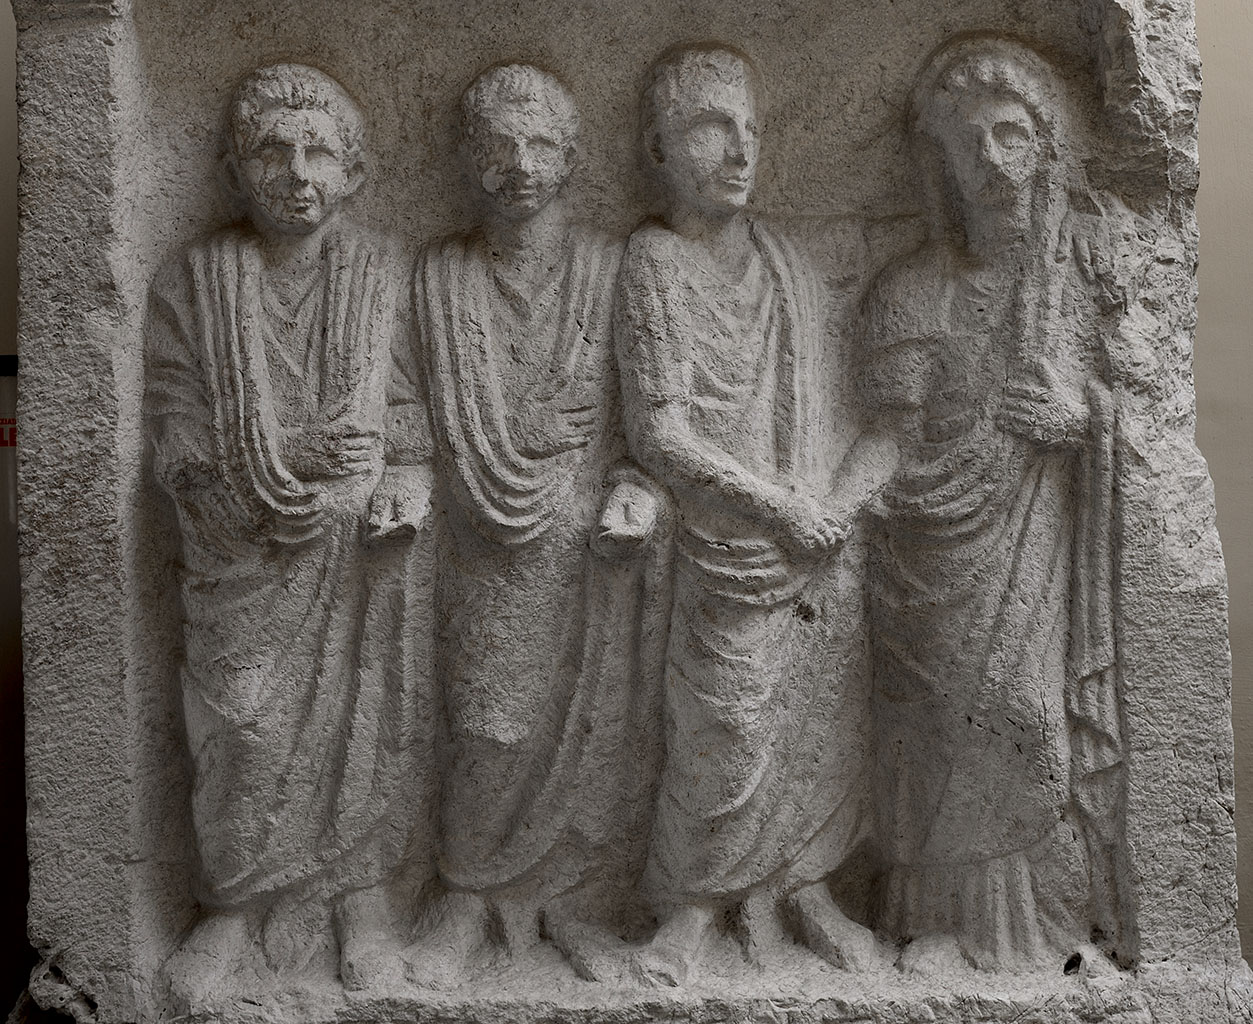 Tombstone of freedmen and their patron (close-up). First half of the 1st century CE. Santa Maria Capua Vetere, Archaeological Museum of ancient Capua